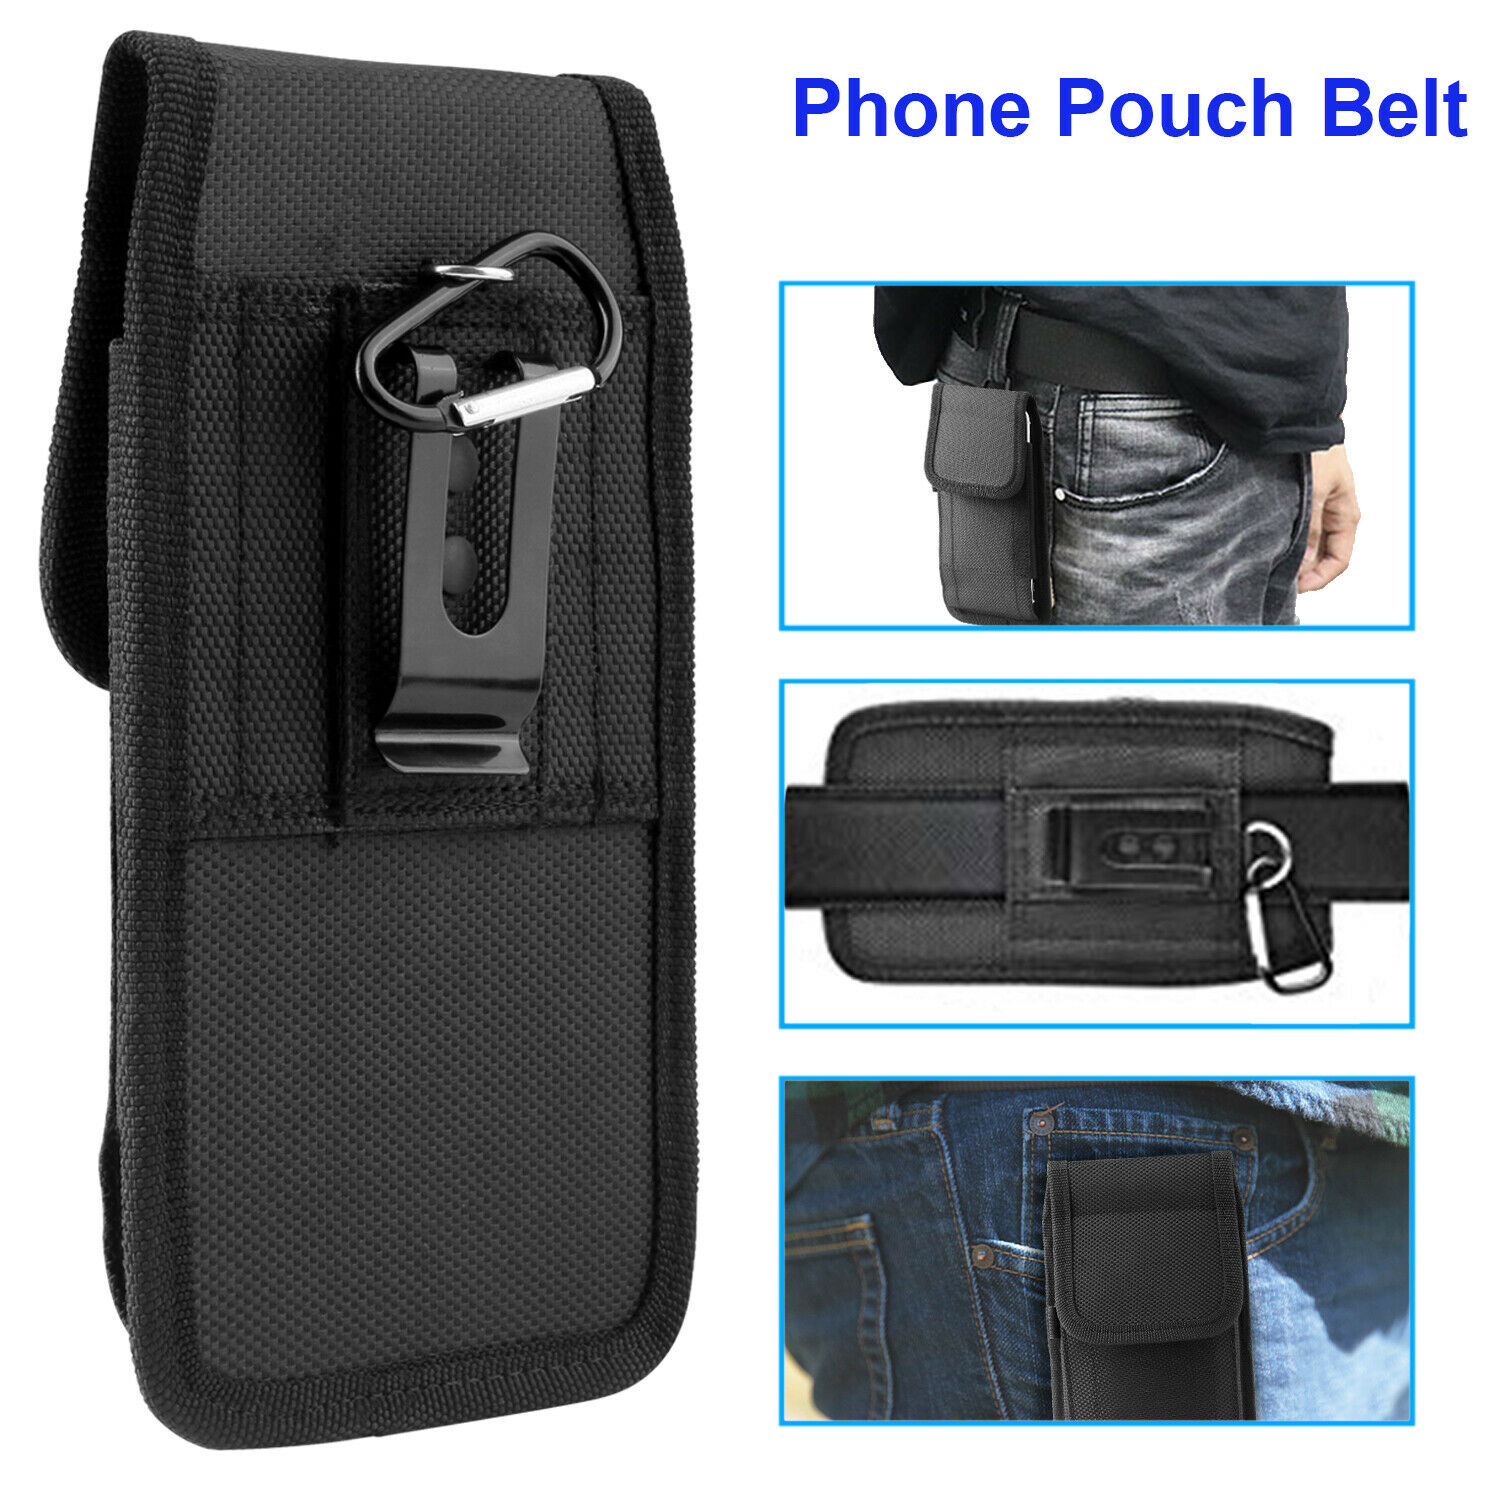 Pakrat Run Belt For Iphone 6 7 Plus Pouch Neon Yellow Small Running Waist Pack For Sale Online Ebay